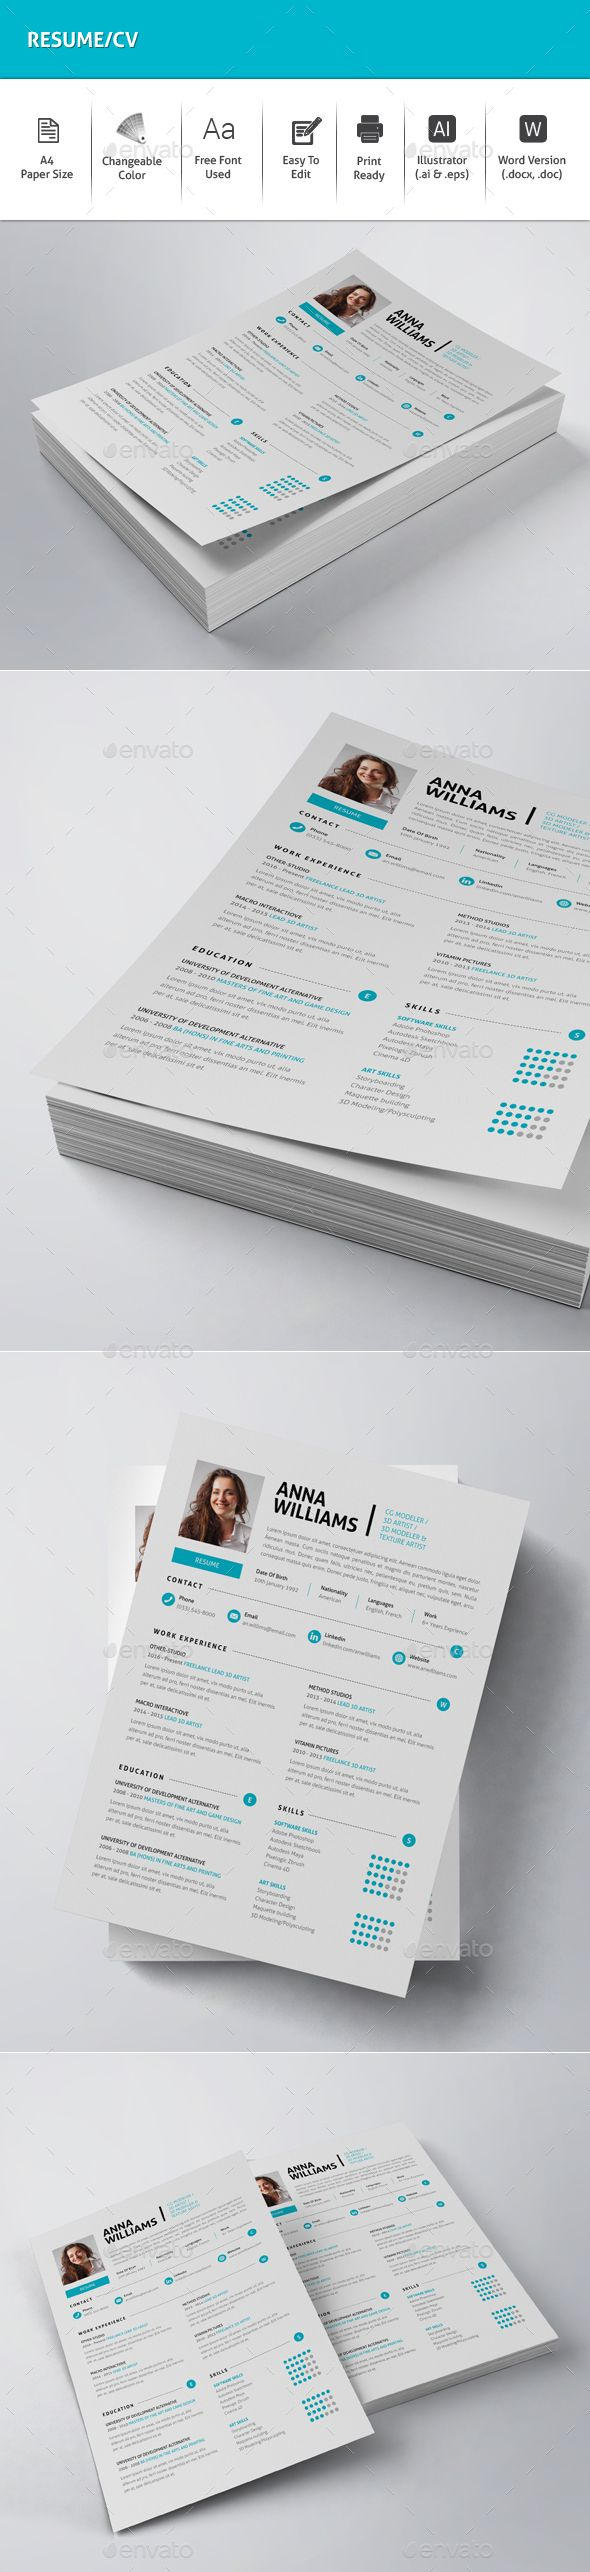 Resume / CV Template Vector EPS, AI Illustrator. Download here: http://graphicriver.net/item/resumecv/16496862?ref=ksioks